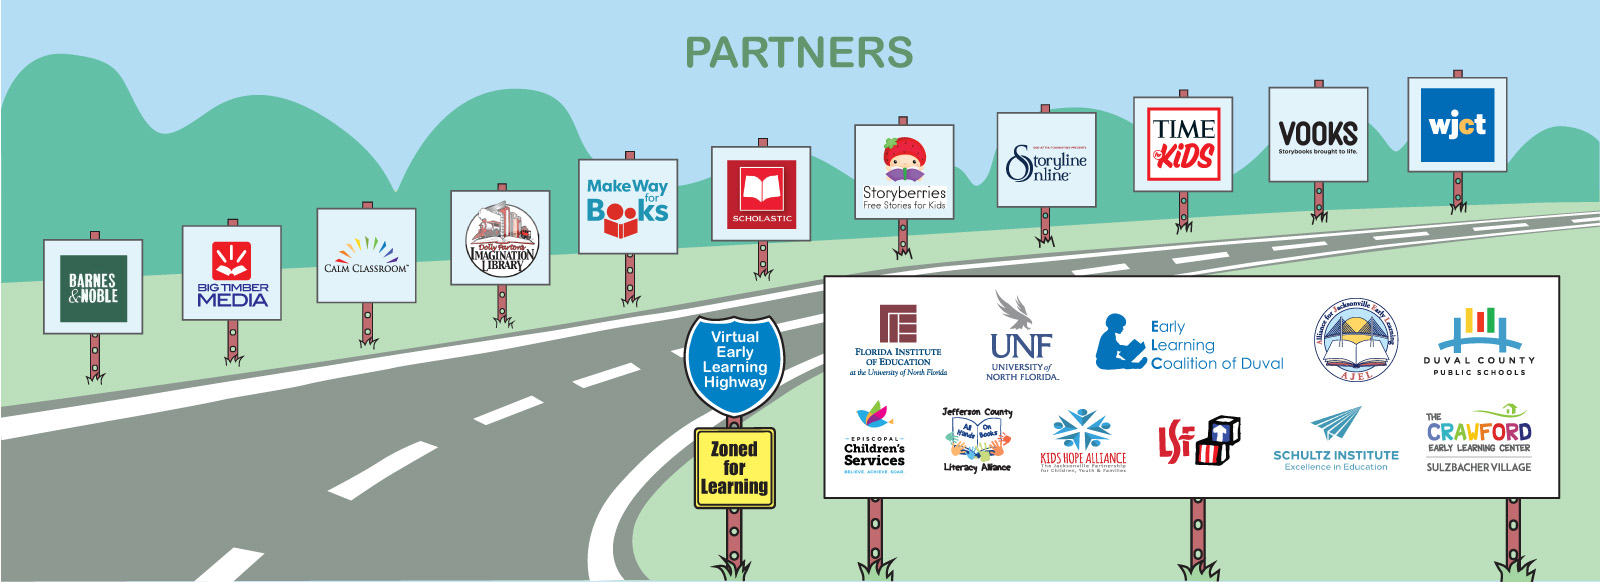 Illustration of a traveling road with green trees, blue sky and different signs with partners logo.